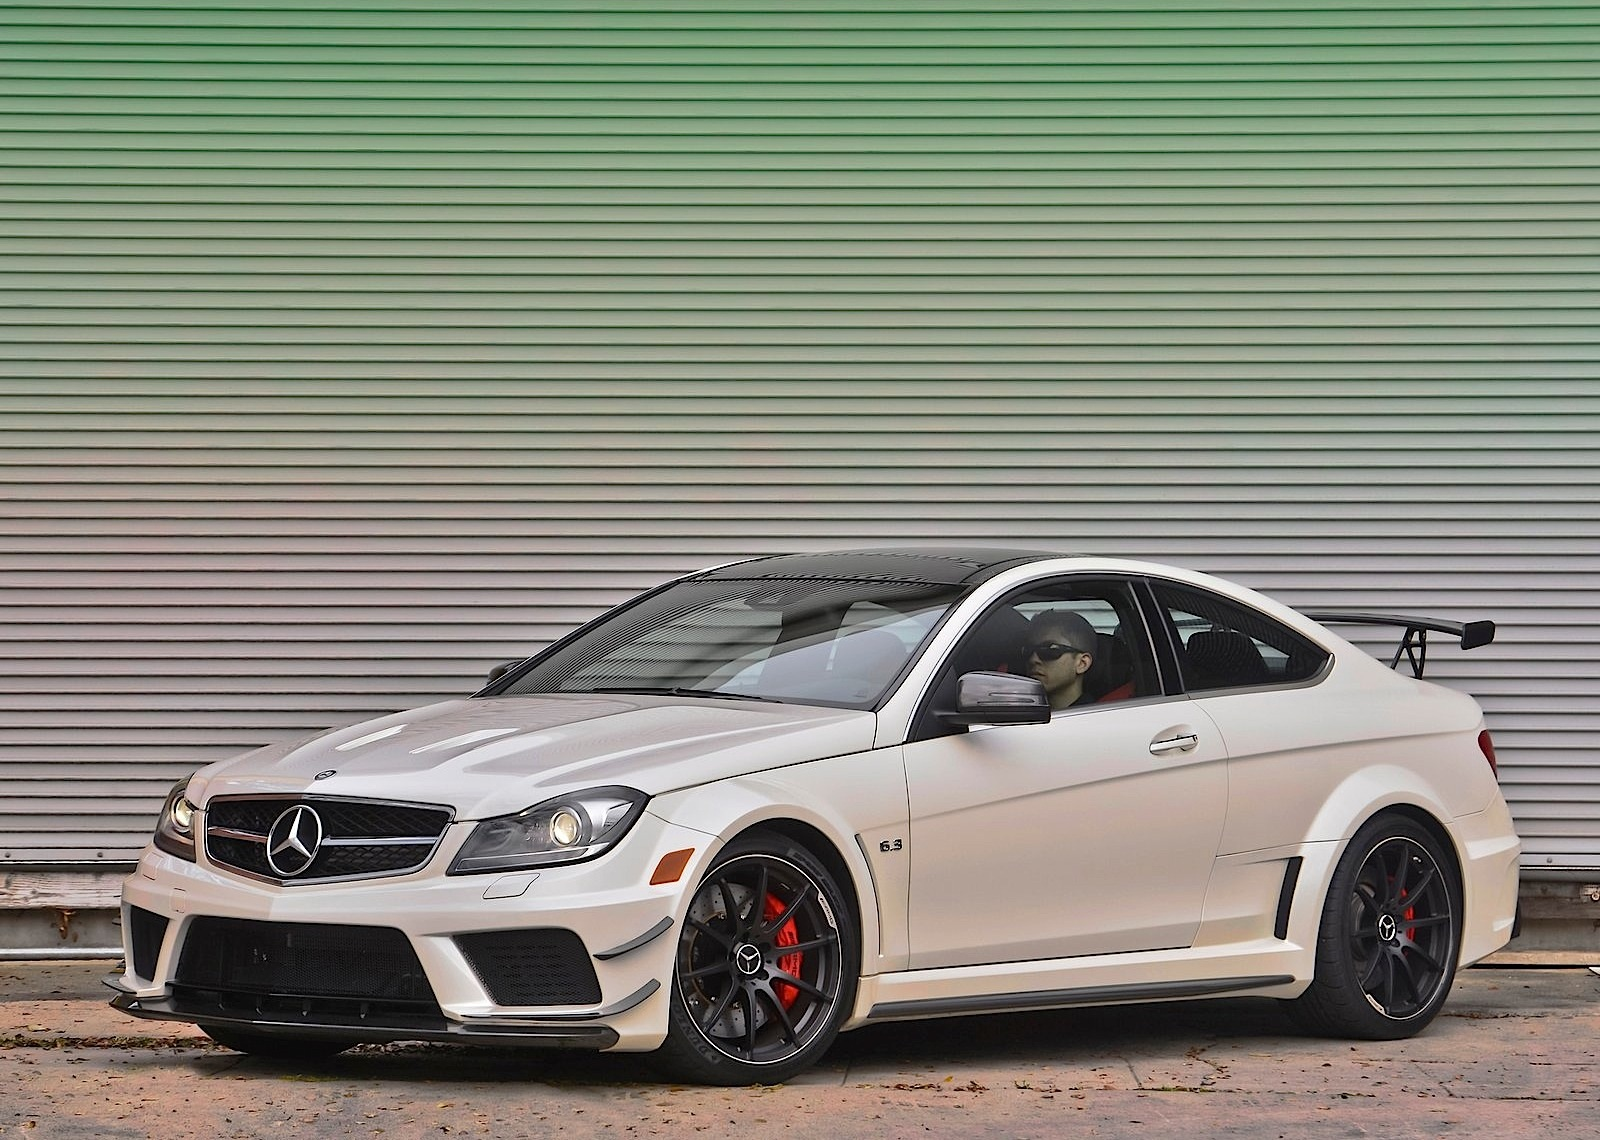 Mercedes c63 amg black series coupe price for Mercedes benz c63 2014